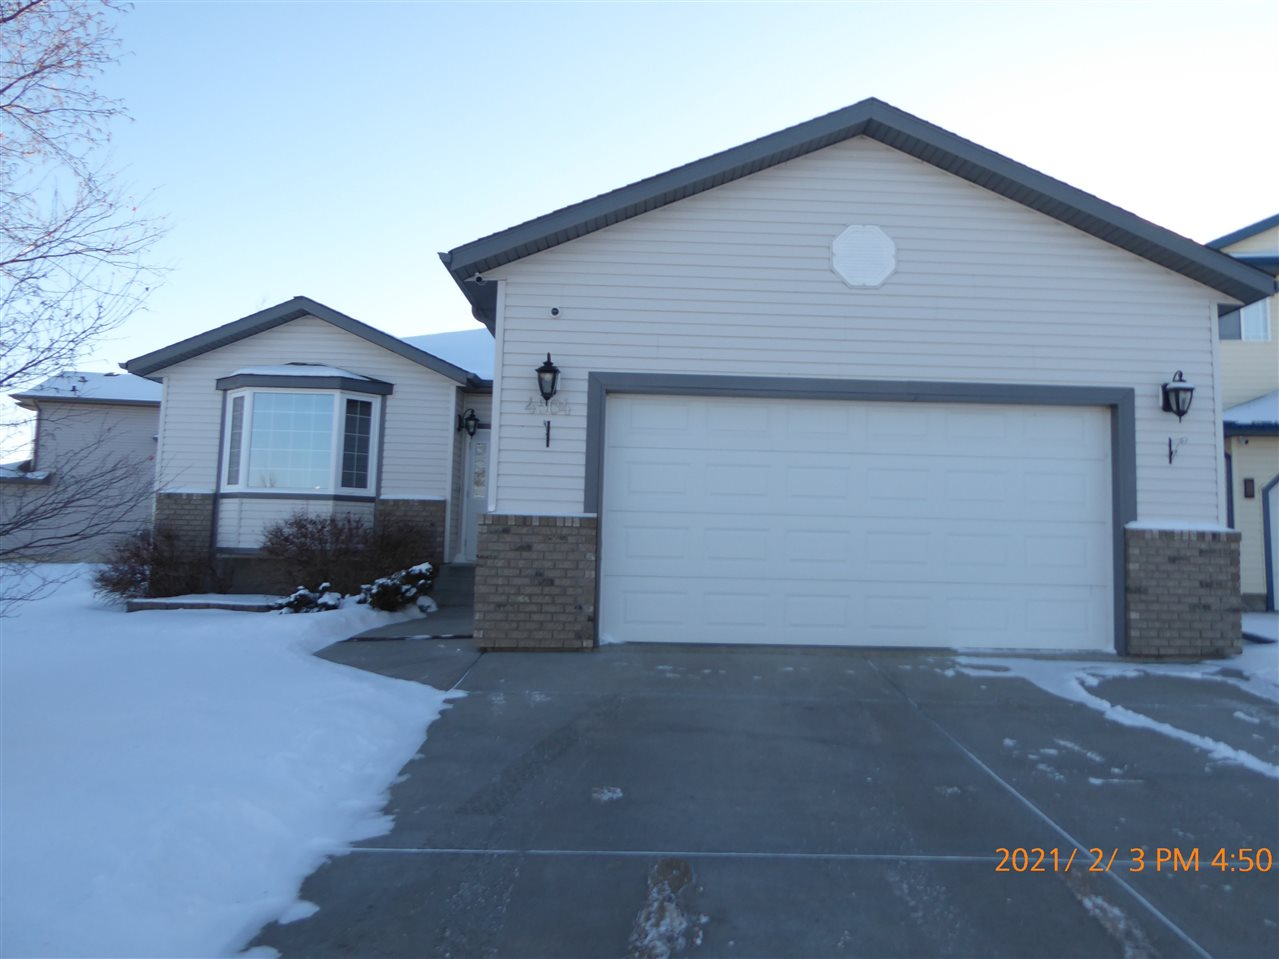 ** At $359,900, Excellent value** - Best to check this one out! Shows 10+! Immaculate 4-Bedroom, 3-Bathroom, 1416 Sq Ft, air-conditioned Family Home close to key amenities.  Newer Stainless Steel Appliances. Open Concept with Natural Gas Fireplace and Garden Doors leading to a nice big deck. Fully Landscaped back yard which includes a firepit and storage shed.  22' x 22'  Heated Double Attached Garage. Other recent upgrades include new laminate flooring, new hot water tank, new paint, etc.  Great location - walking distance to Schools and Hospital. Great Family Home in a great Neighborhood. And Quick Possession Available!